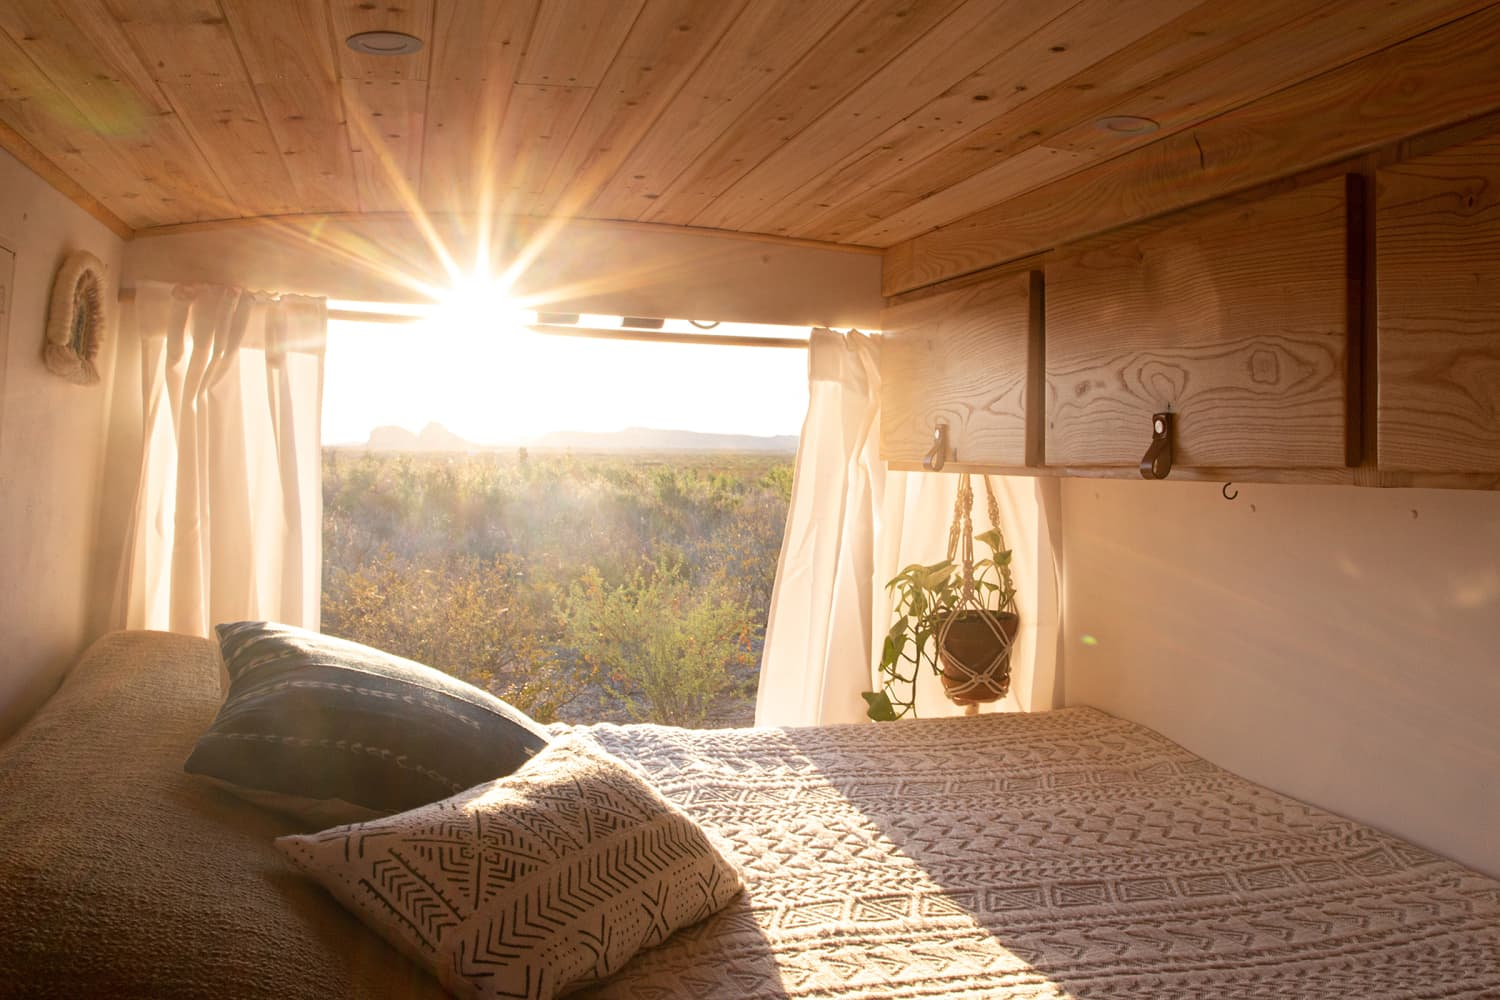 A 55-Square-Feet Converted Van Is So Gorgeous, It's Like a Minimal, Modern, Woodsy Cabin on Wheels